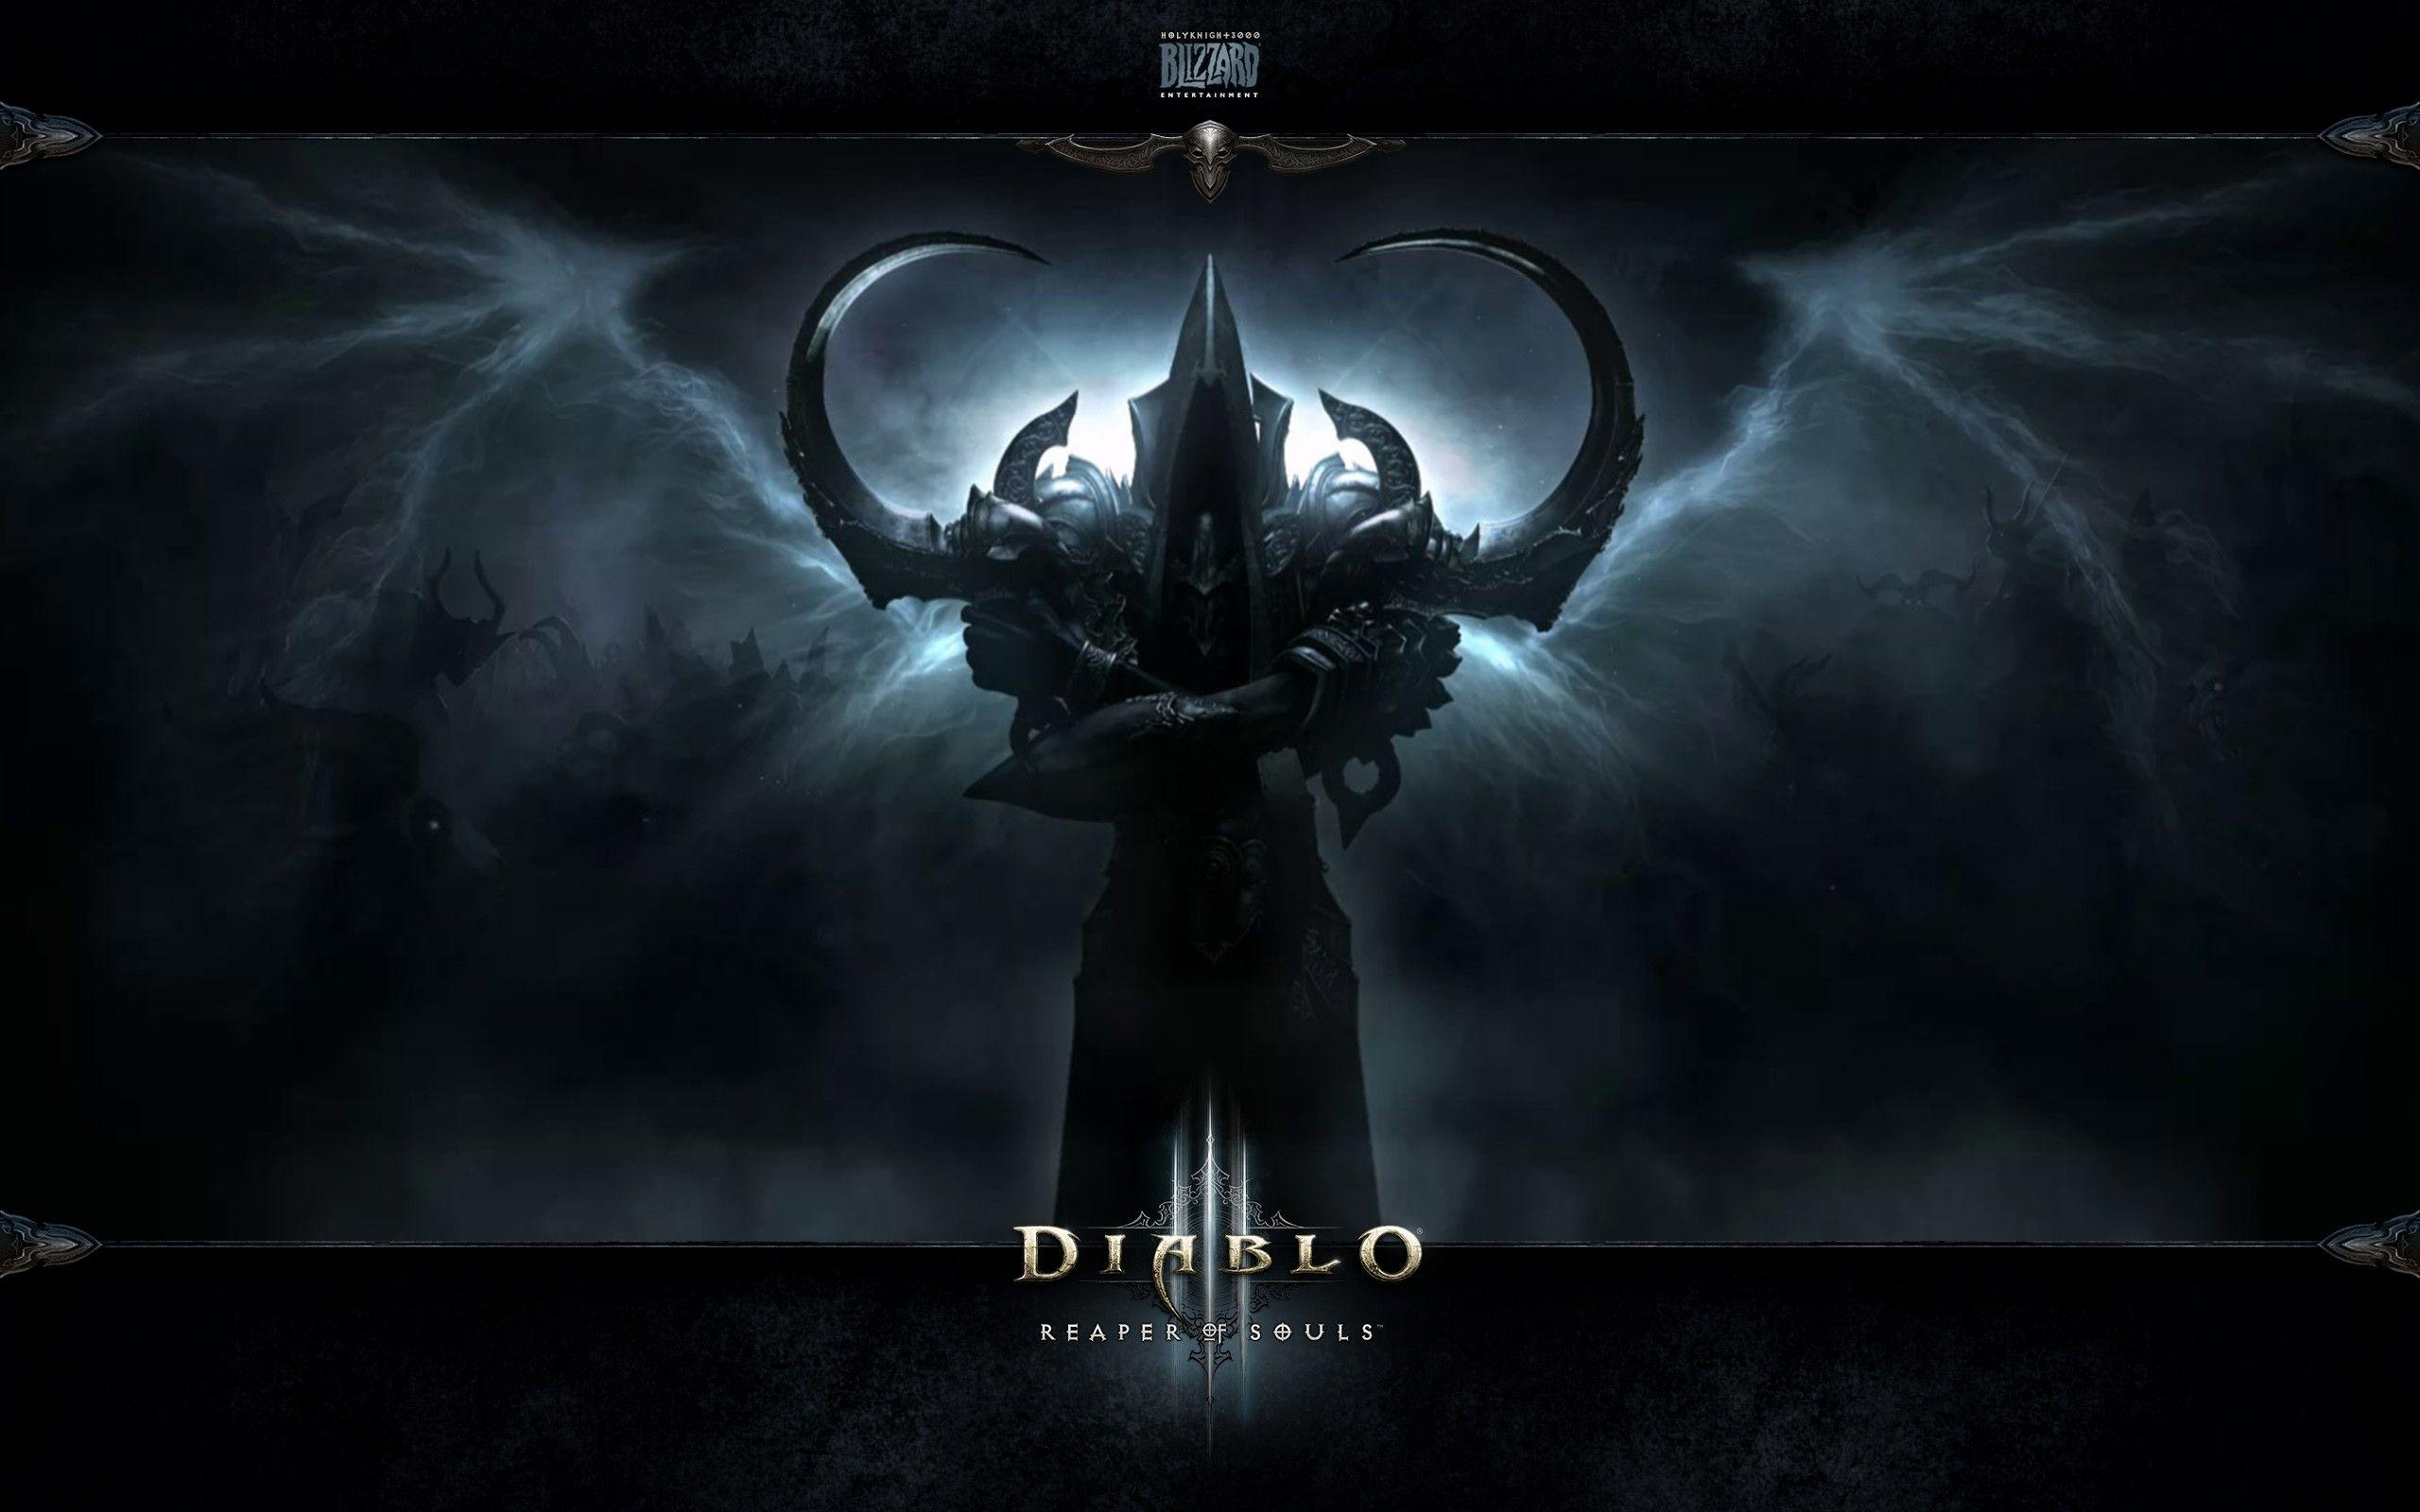 diablo wallpaper 2560x1440 - photo #17